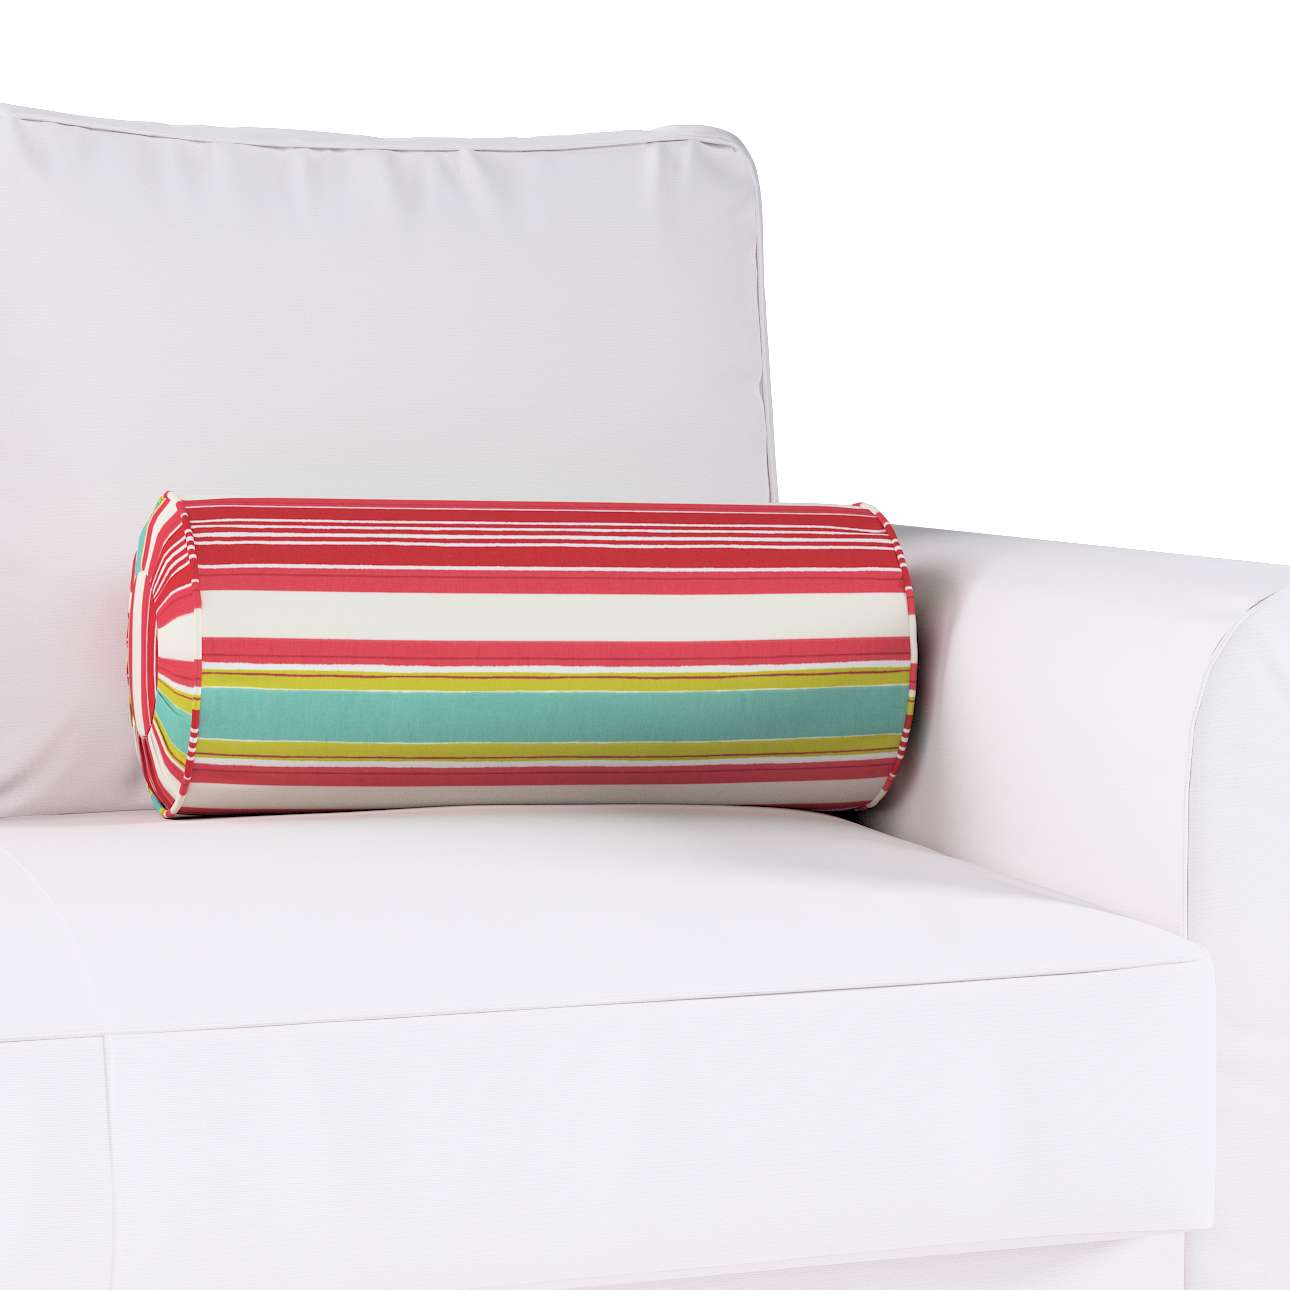 Bolster cushion with pleats Ø 20 x 50 cm (8 x 20 inch) in collection Londres, fabric: 122-01